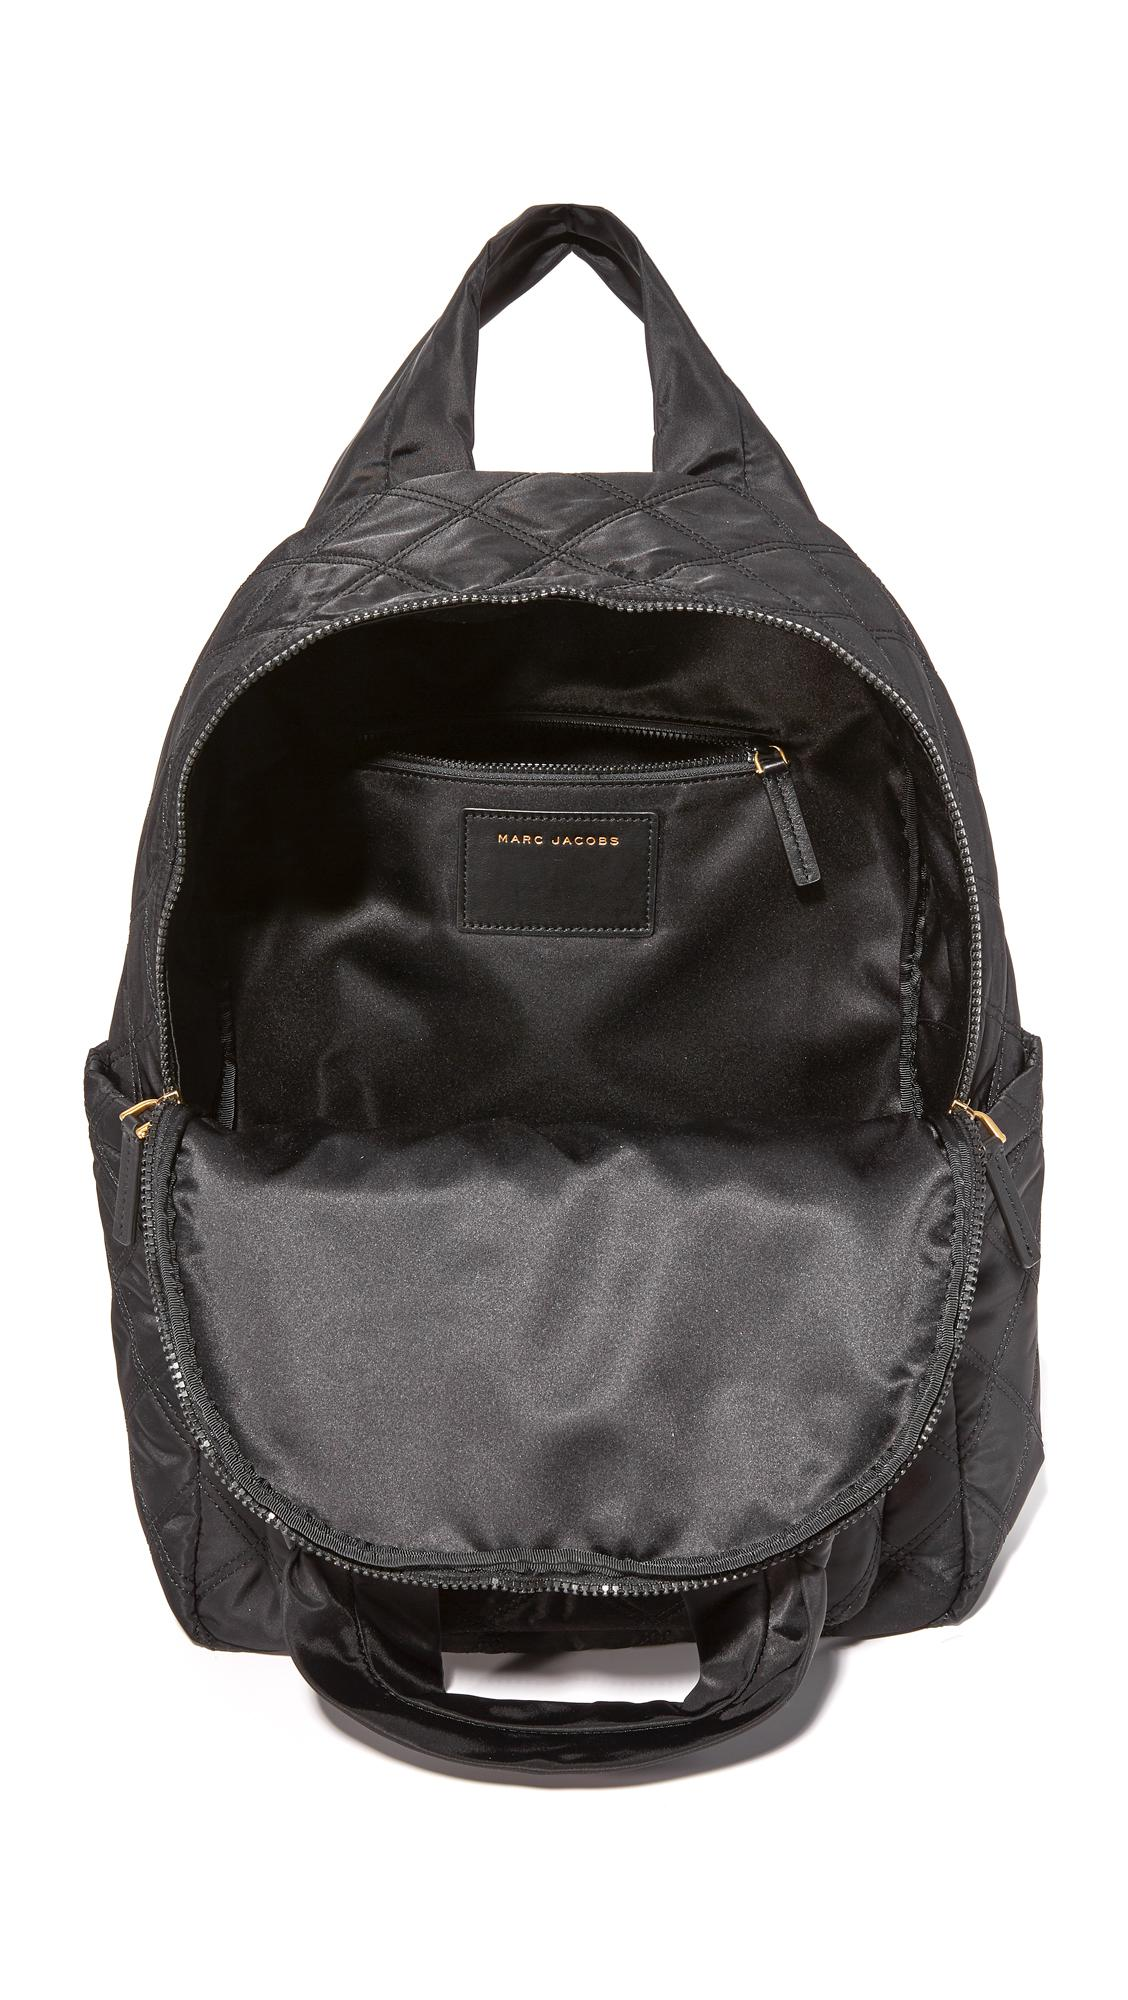 6b2bd122f8a6 Nylon Knot Large Backpack Marc Jacobs- Fenix Toulouse Handball